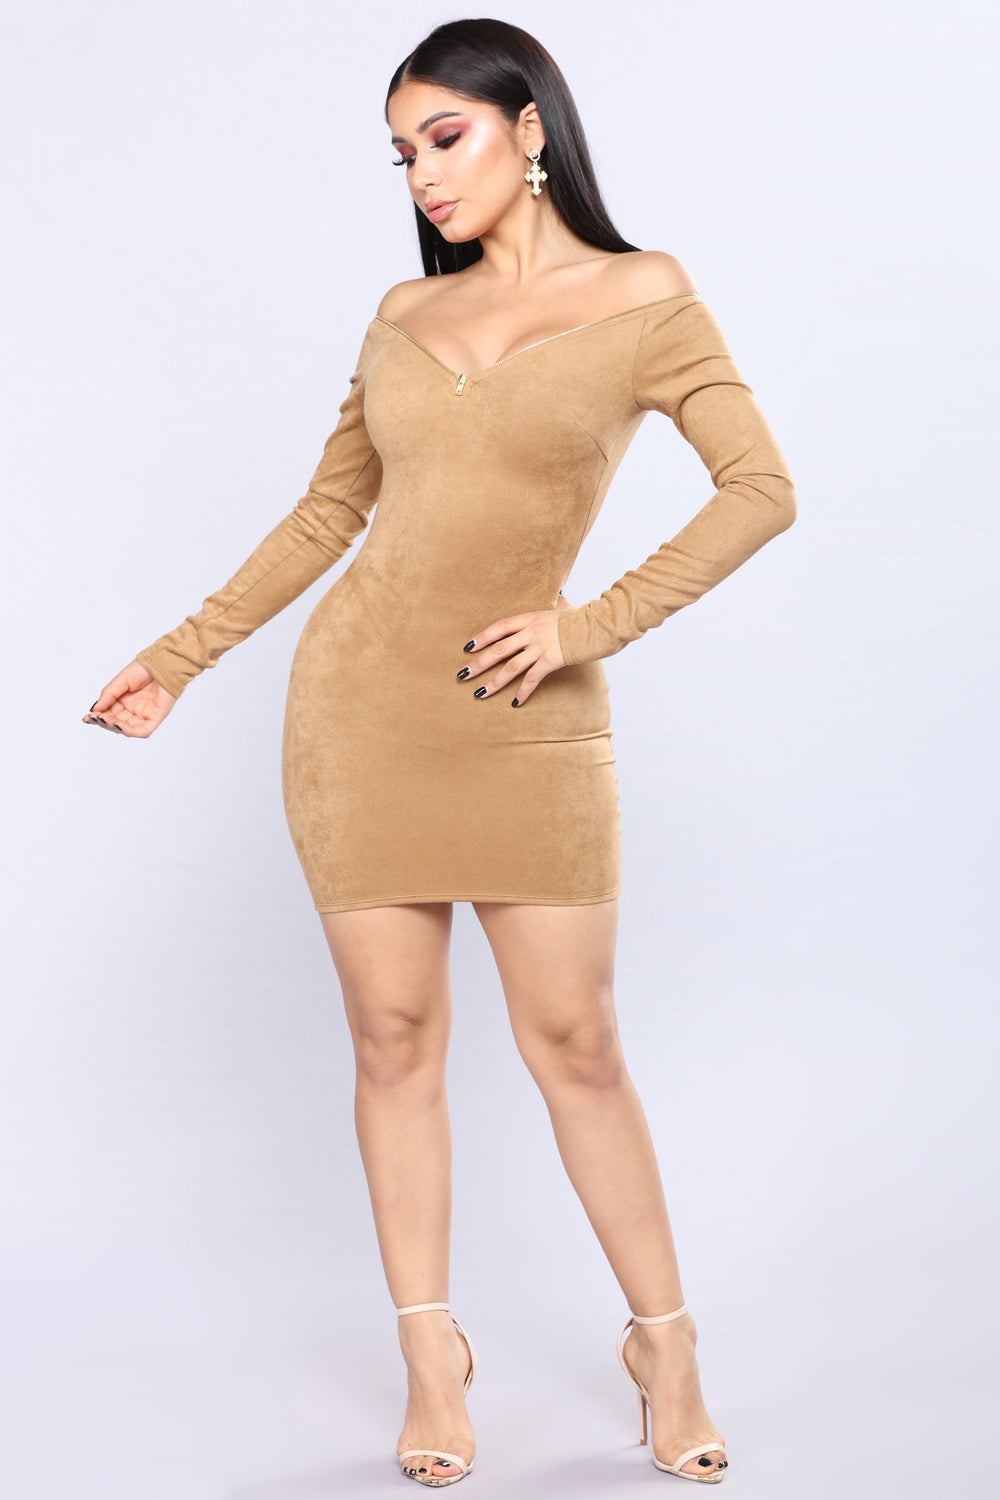 Fawn Over You Dress - Camel